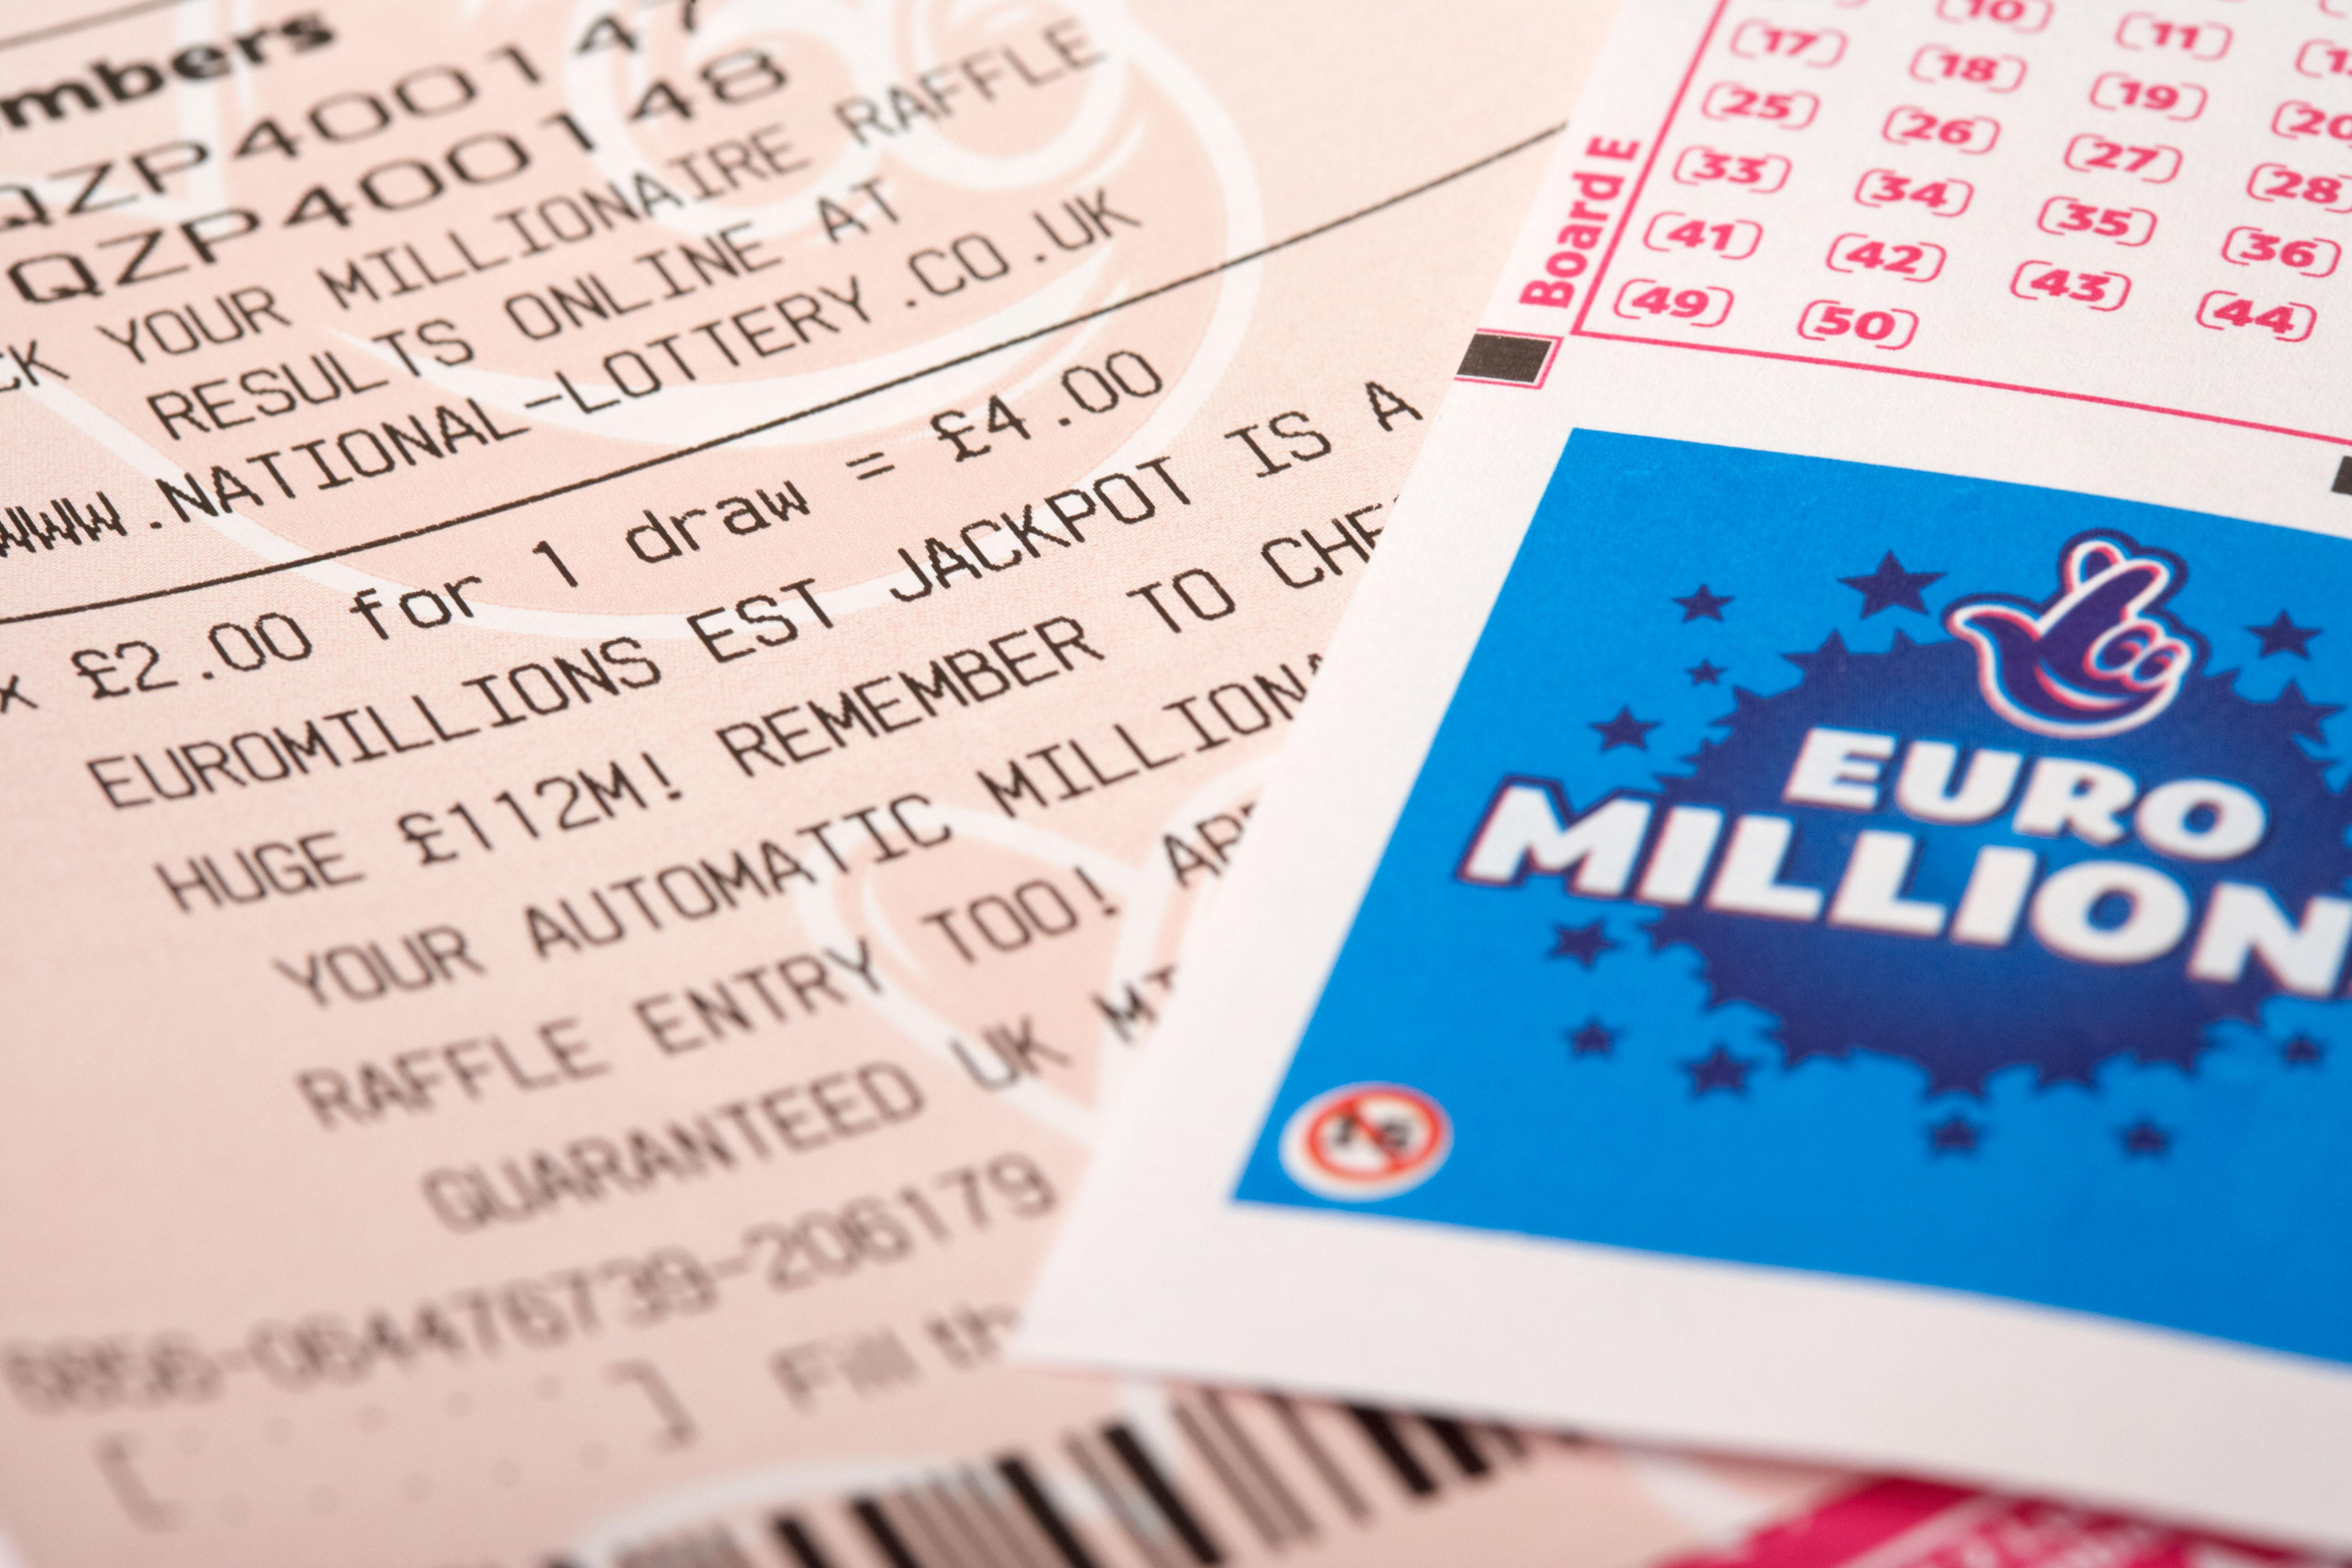 Lotto Euromillions Euromillions Results For Friday May 3 2019 National Lottery Draw